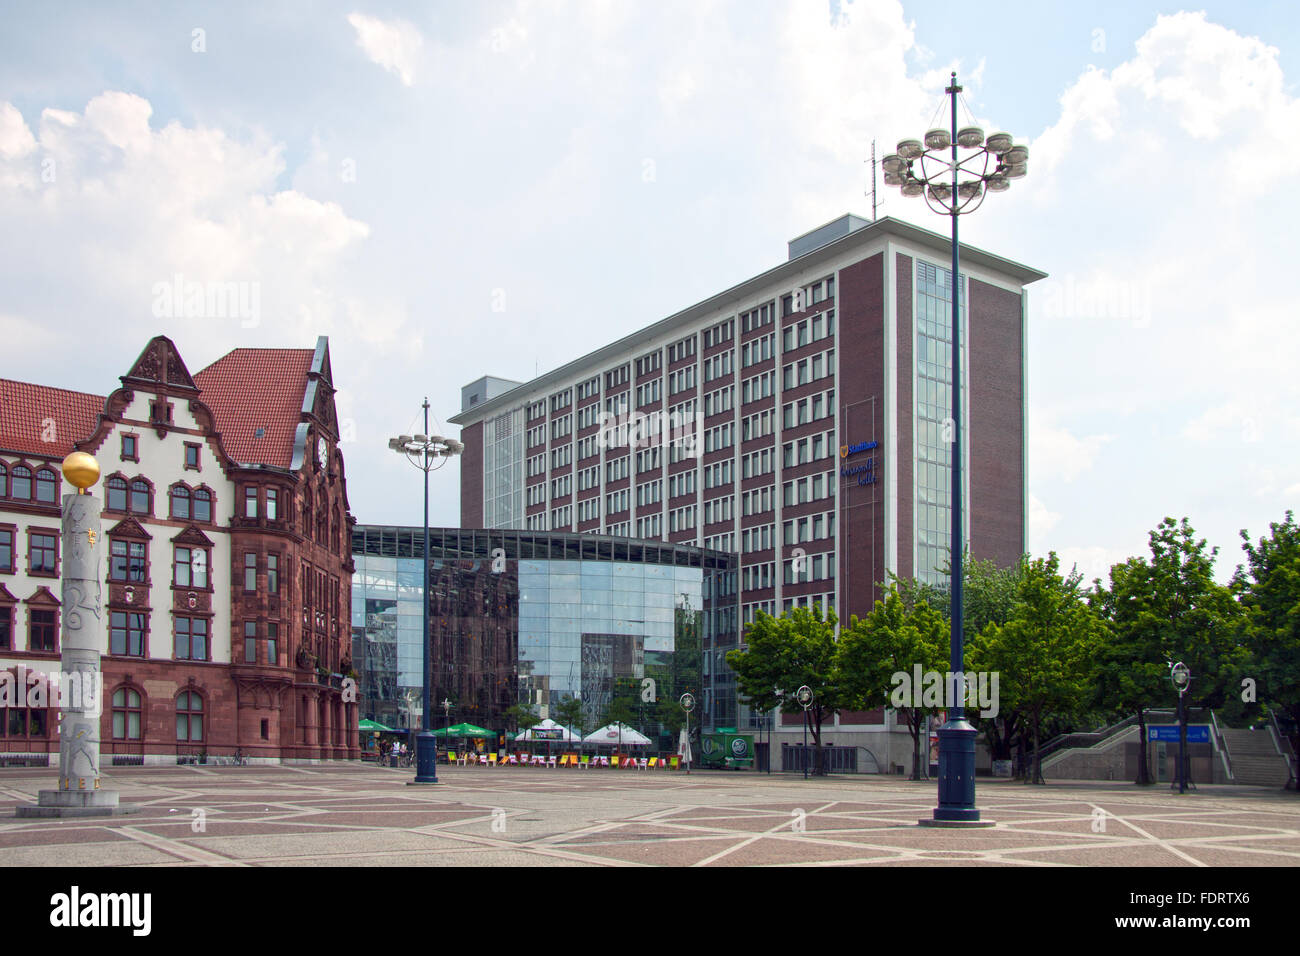 town hall,dortmund,peace place,berswordt hall - Stock Image